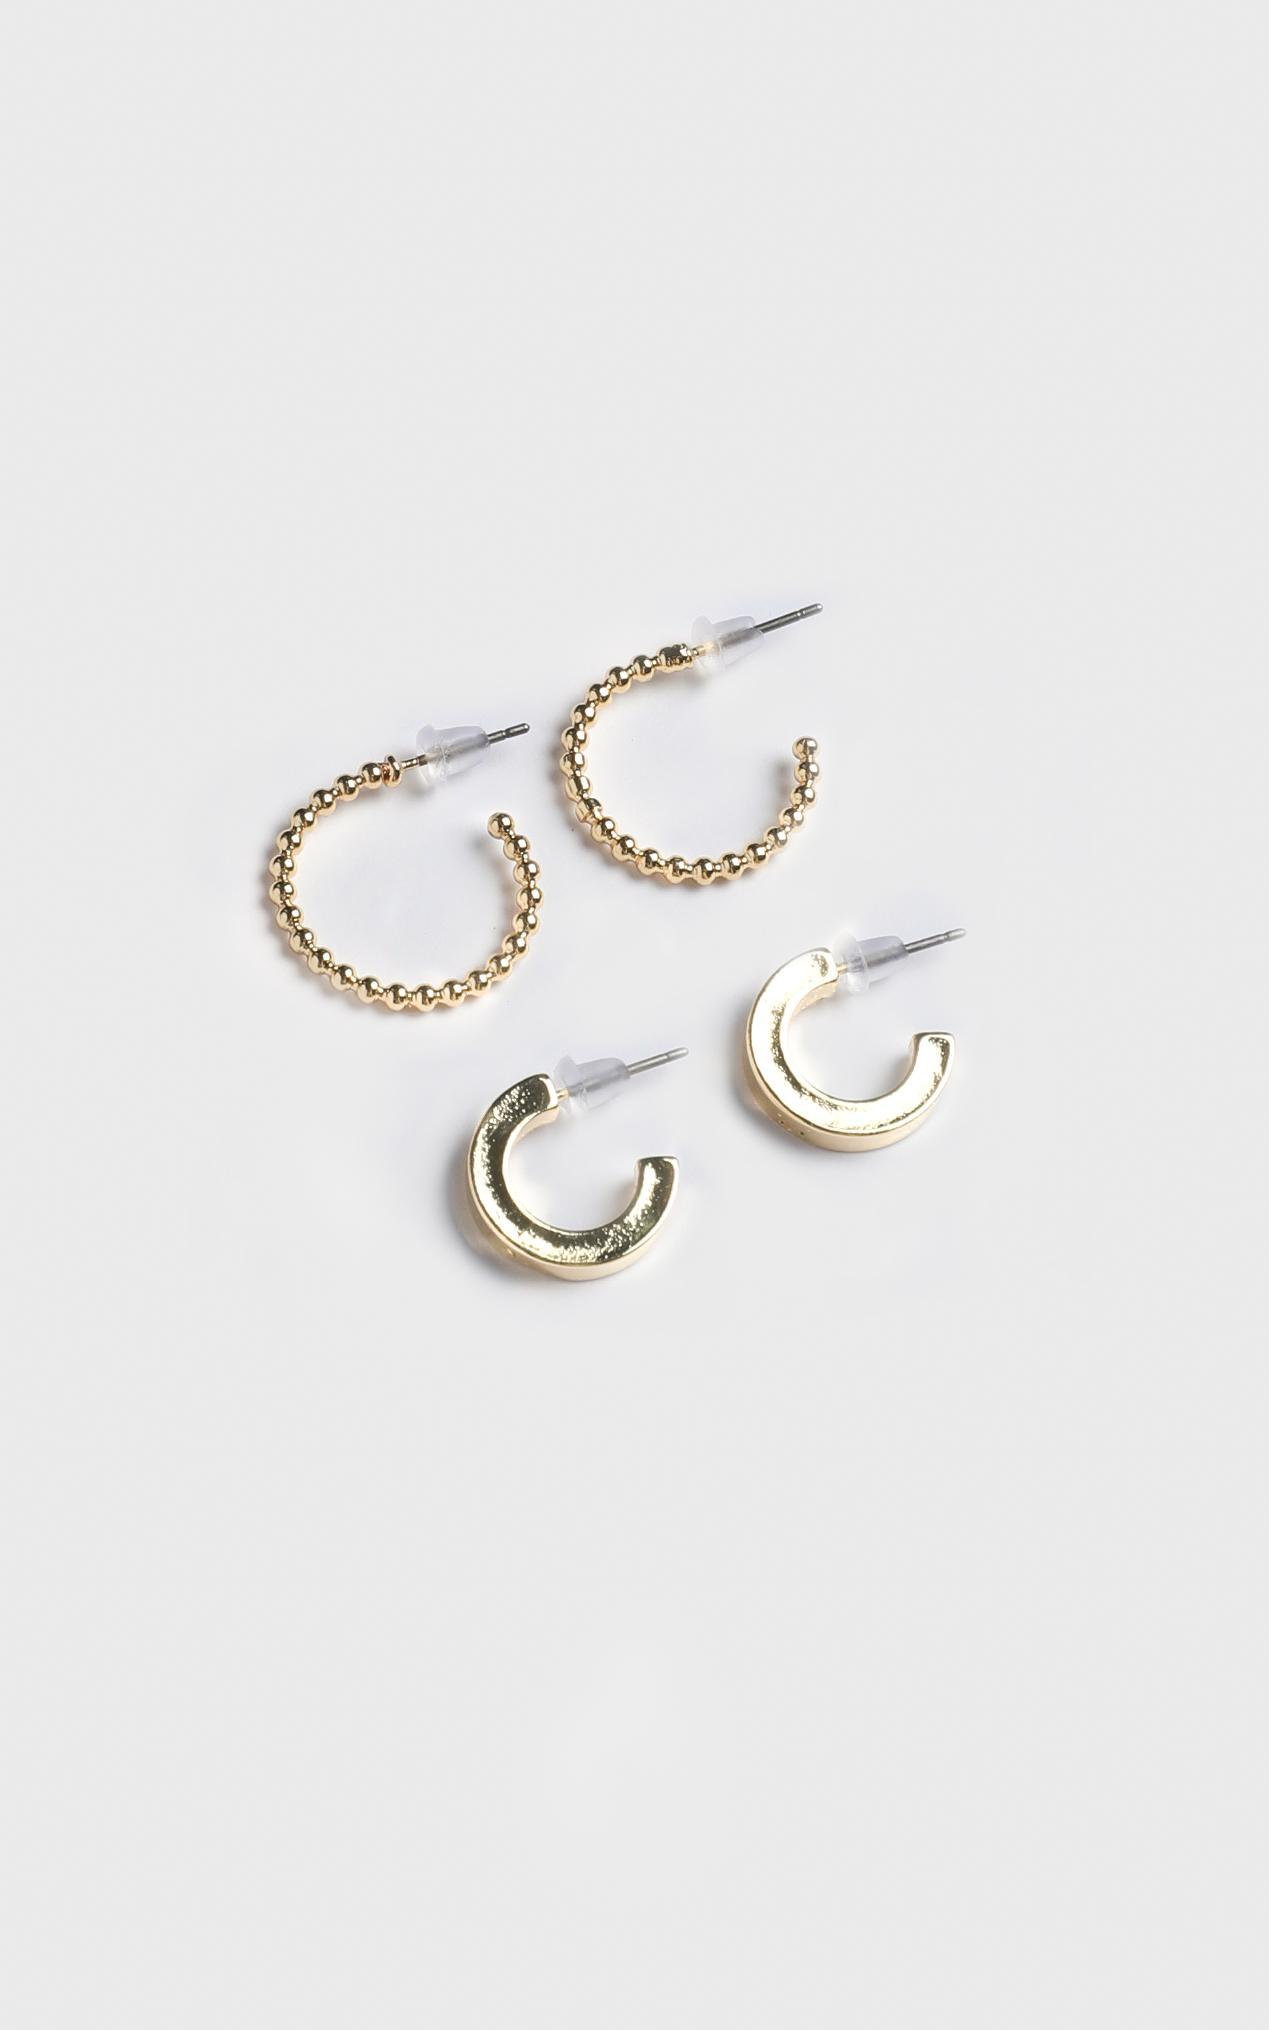 Minc Collections - Daylight Hoop Earrings Set In Gold, , hi-res image number null